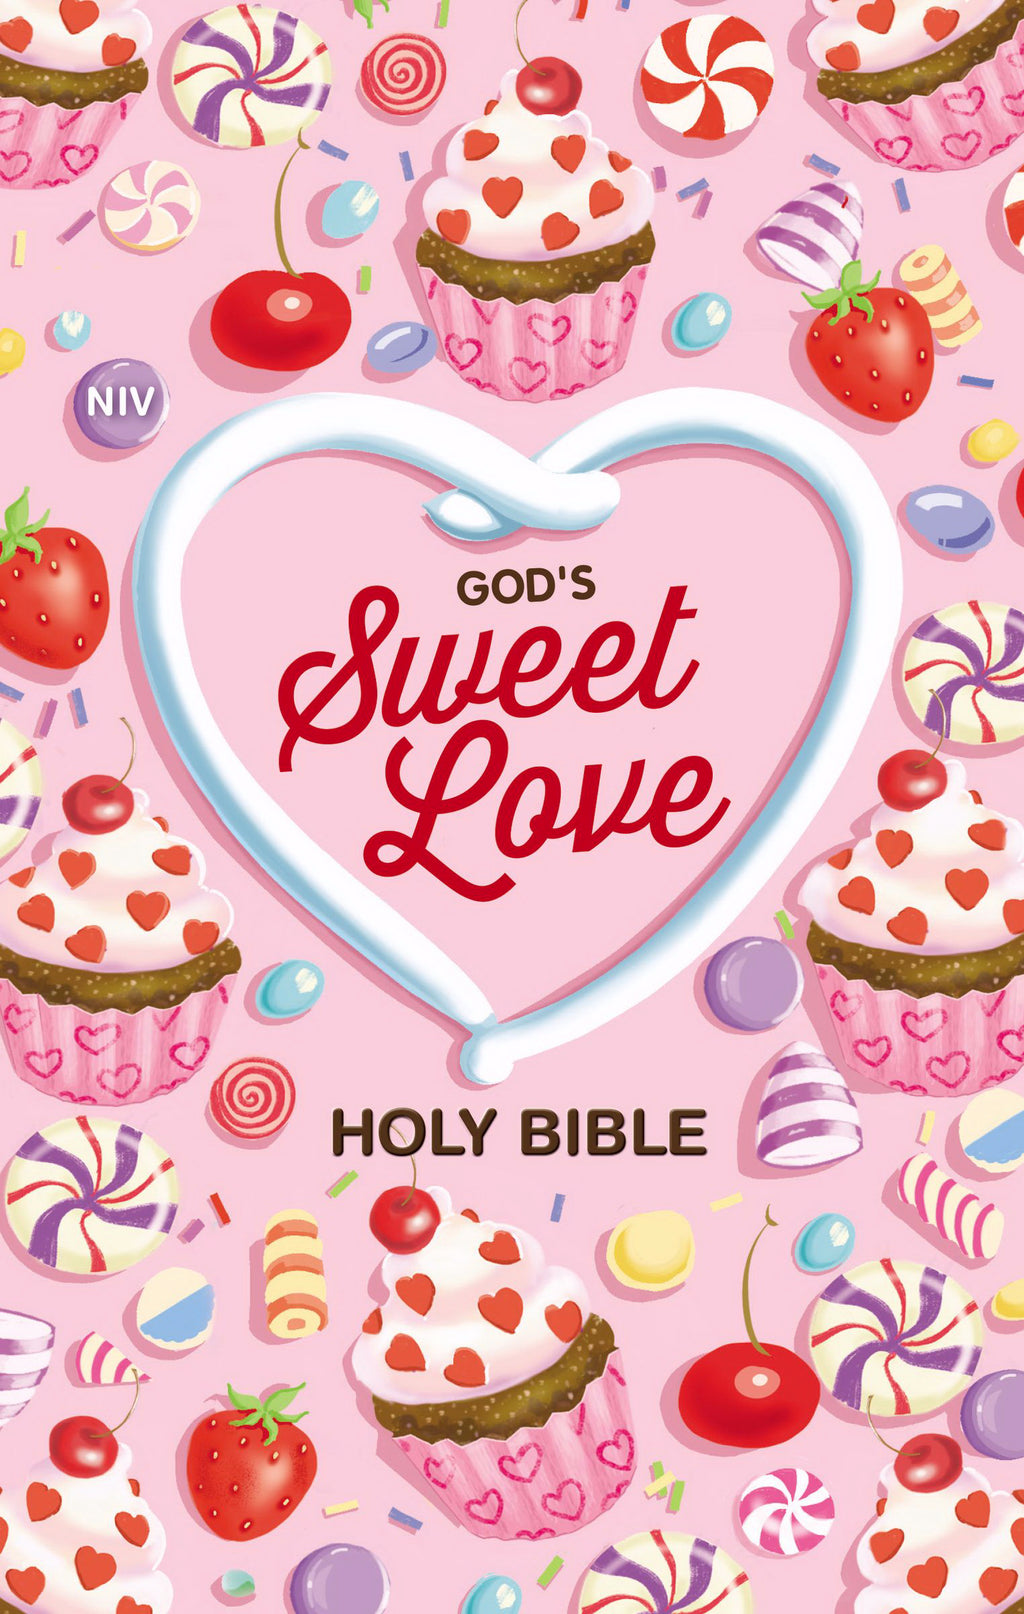 NIV God's Sweet Love Holy Bible (Comfort Print)-Hardcover